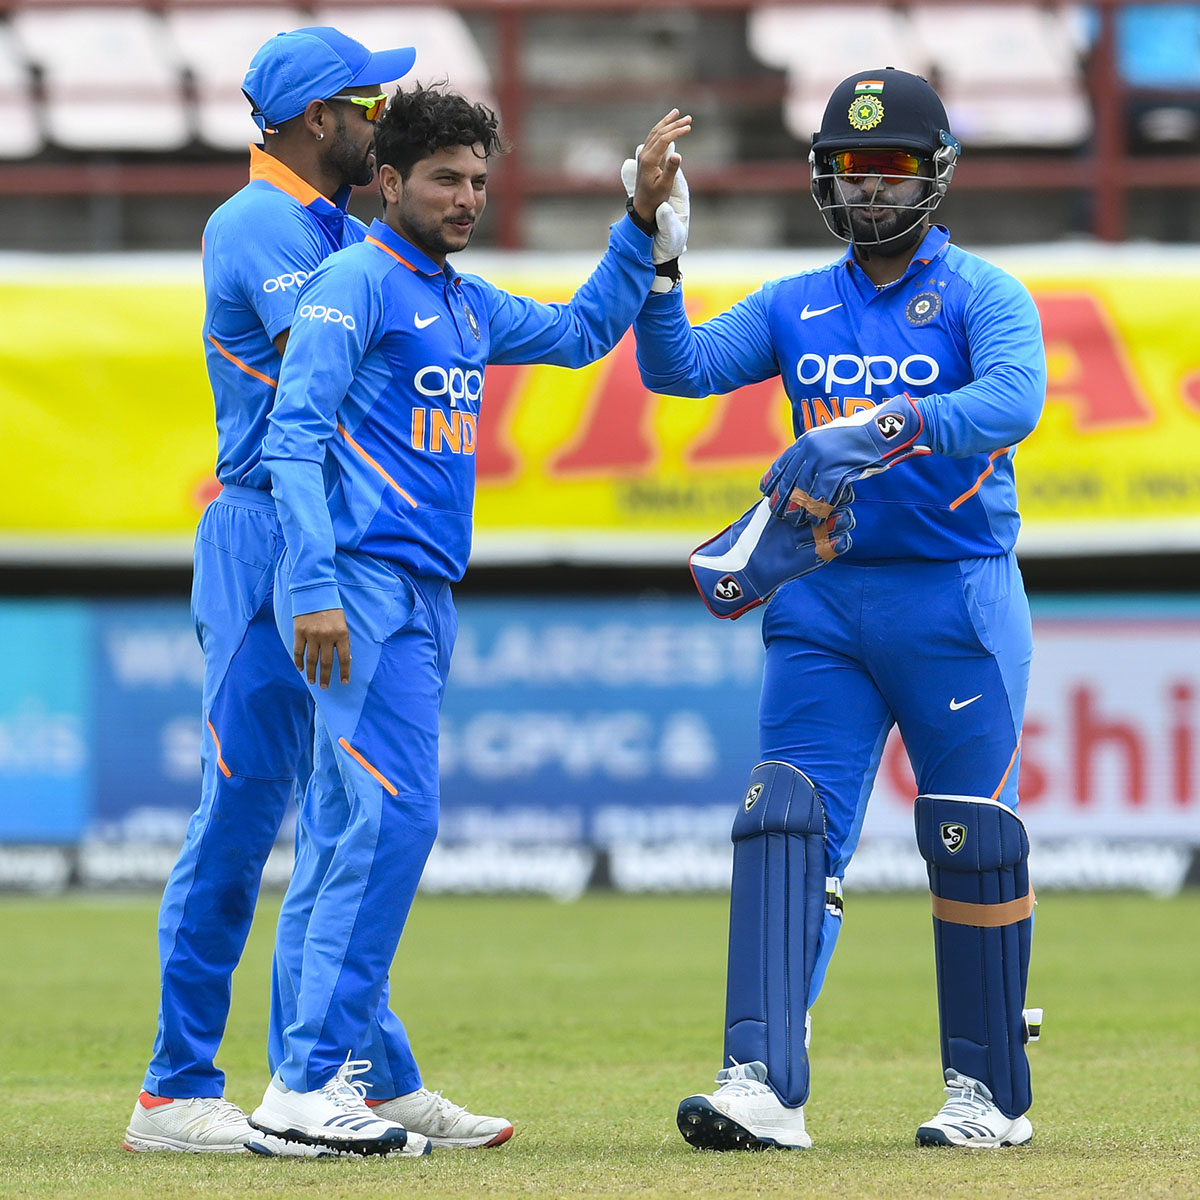 Kuldeep Yadav celebrates the only wicket to fall